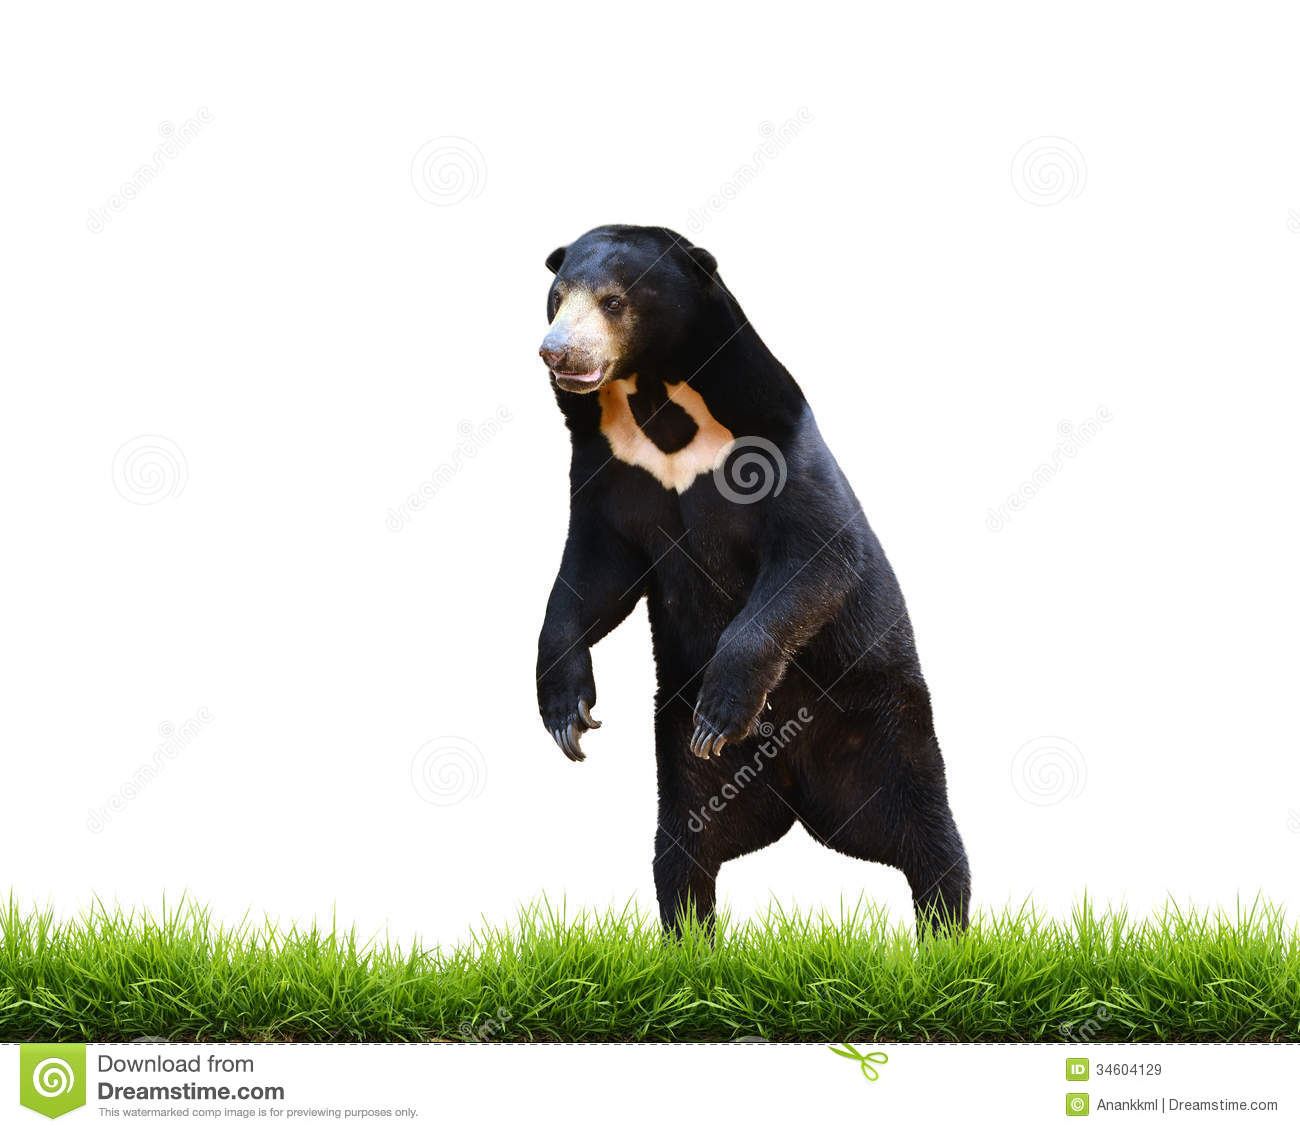 Sun Bear clipart #10, Download drawings